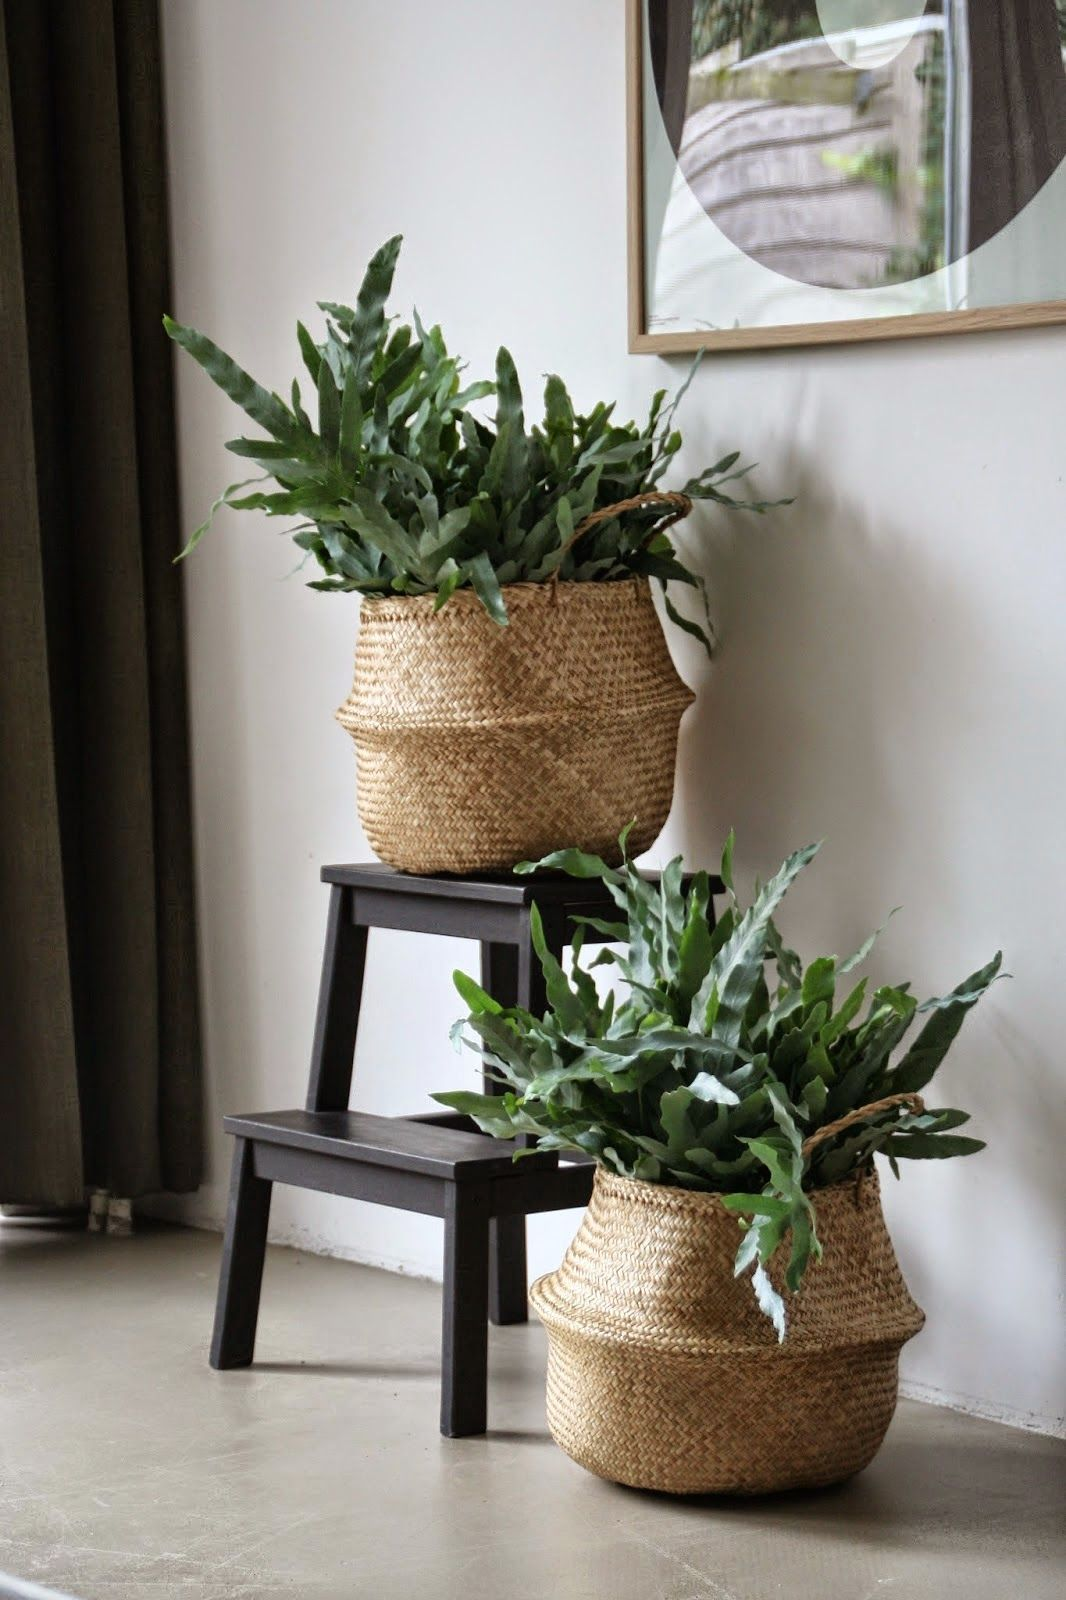 natural baskets plants interior plants plants storage